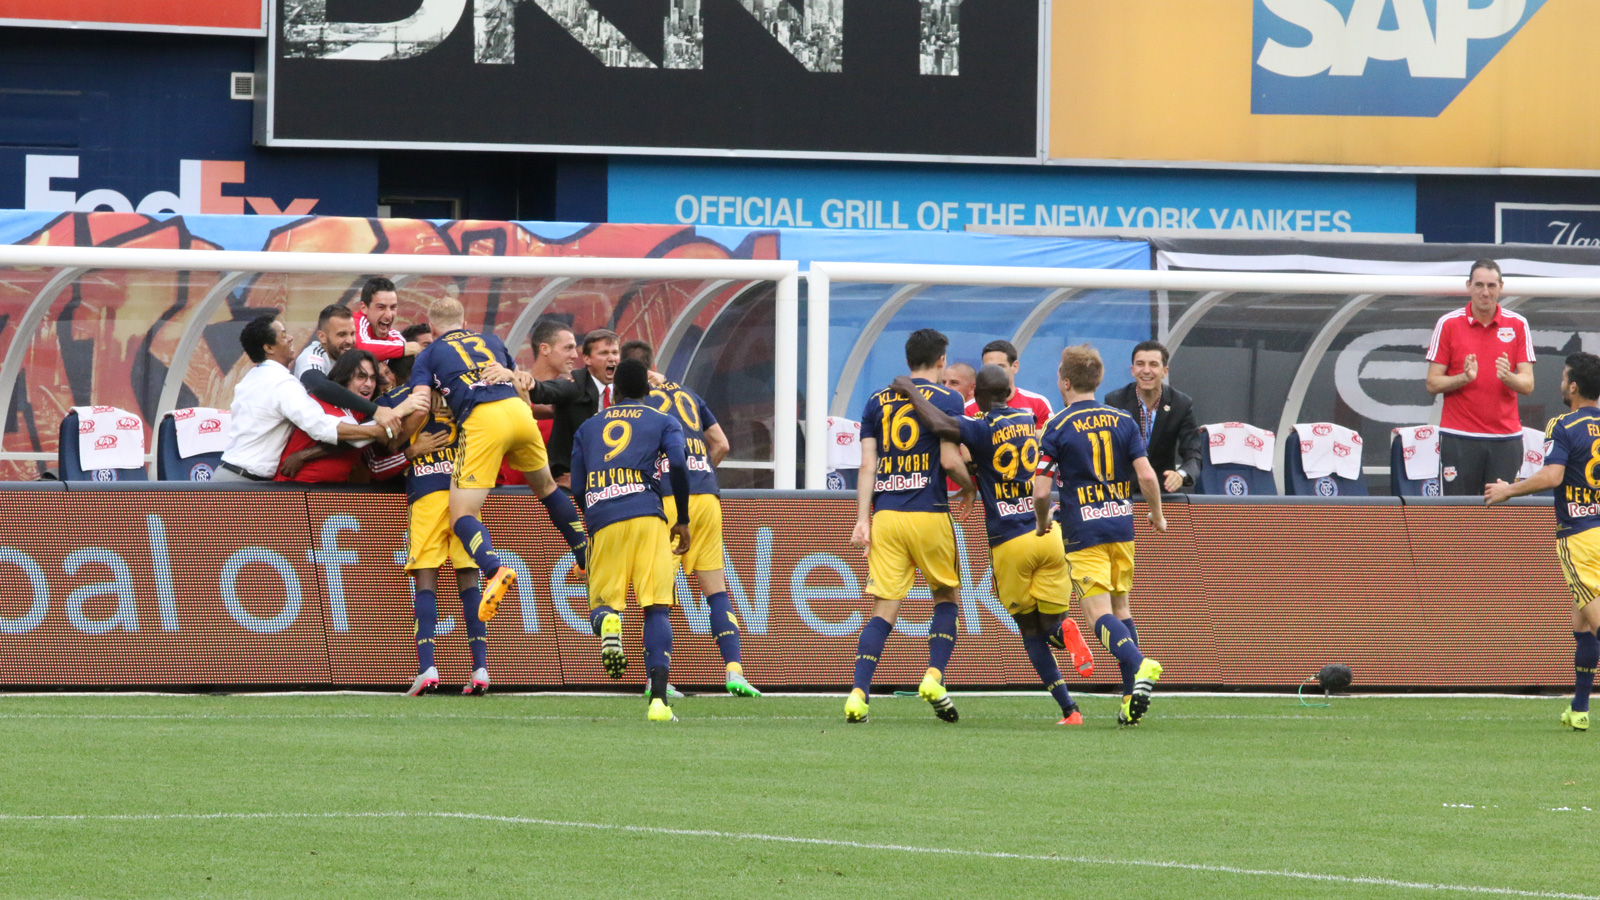 The New York Red Bulls run over to their bench to celebrate defender Chris Duvall's (25) first goal in MLS. Strikers Mike Grella (13) and Anatole Abang (9) and defender Matt Miazga (20) join coach Jesse Marsch in the post goal embrace.